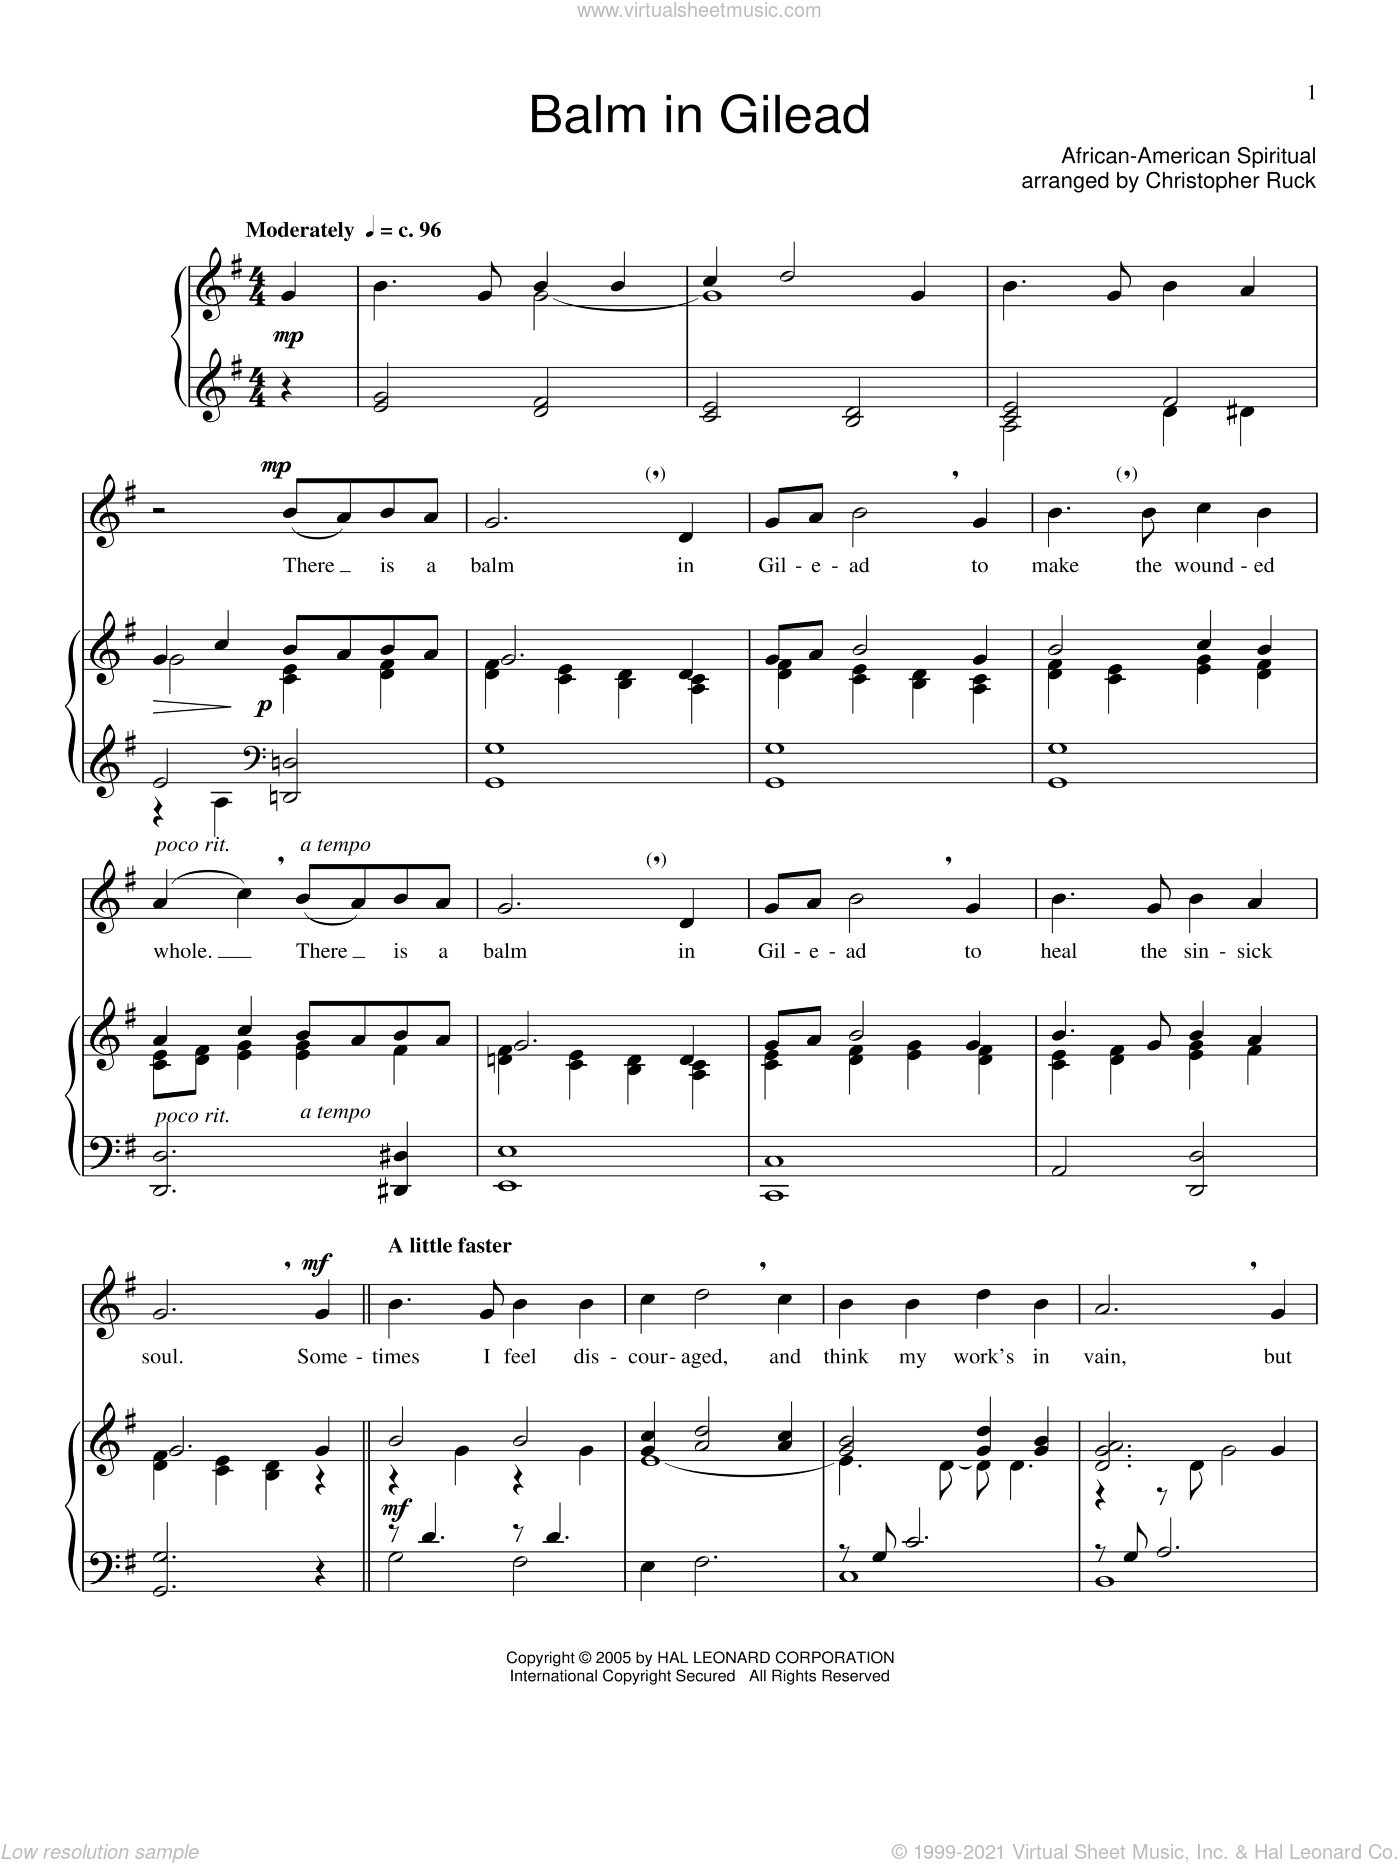 Balm In Gilead sheet music for voice and piano